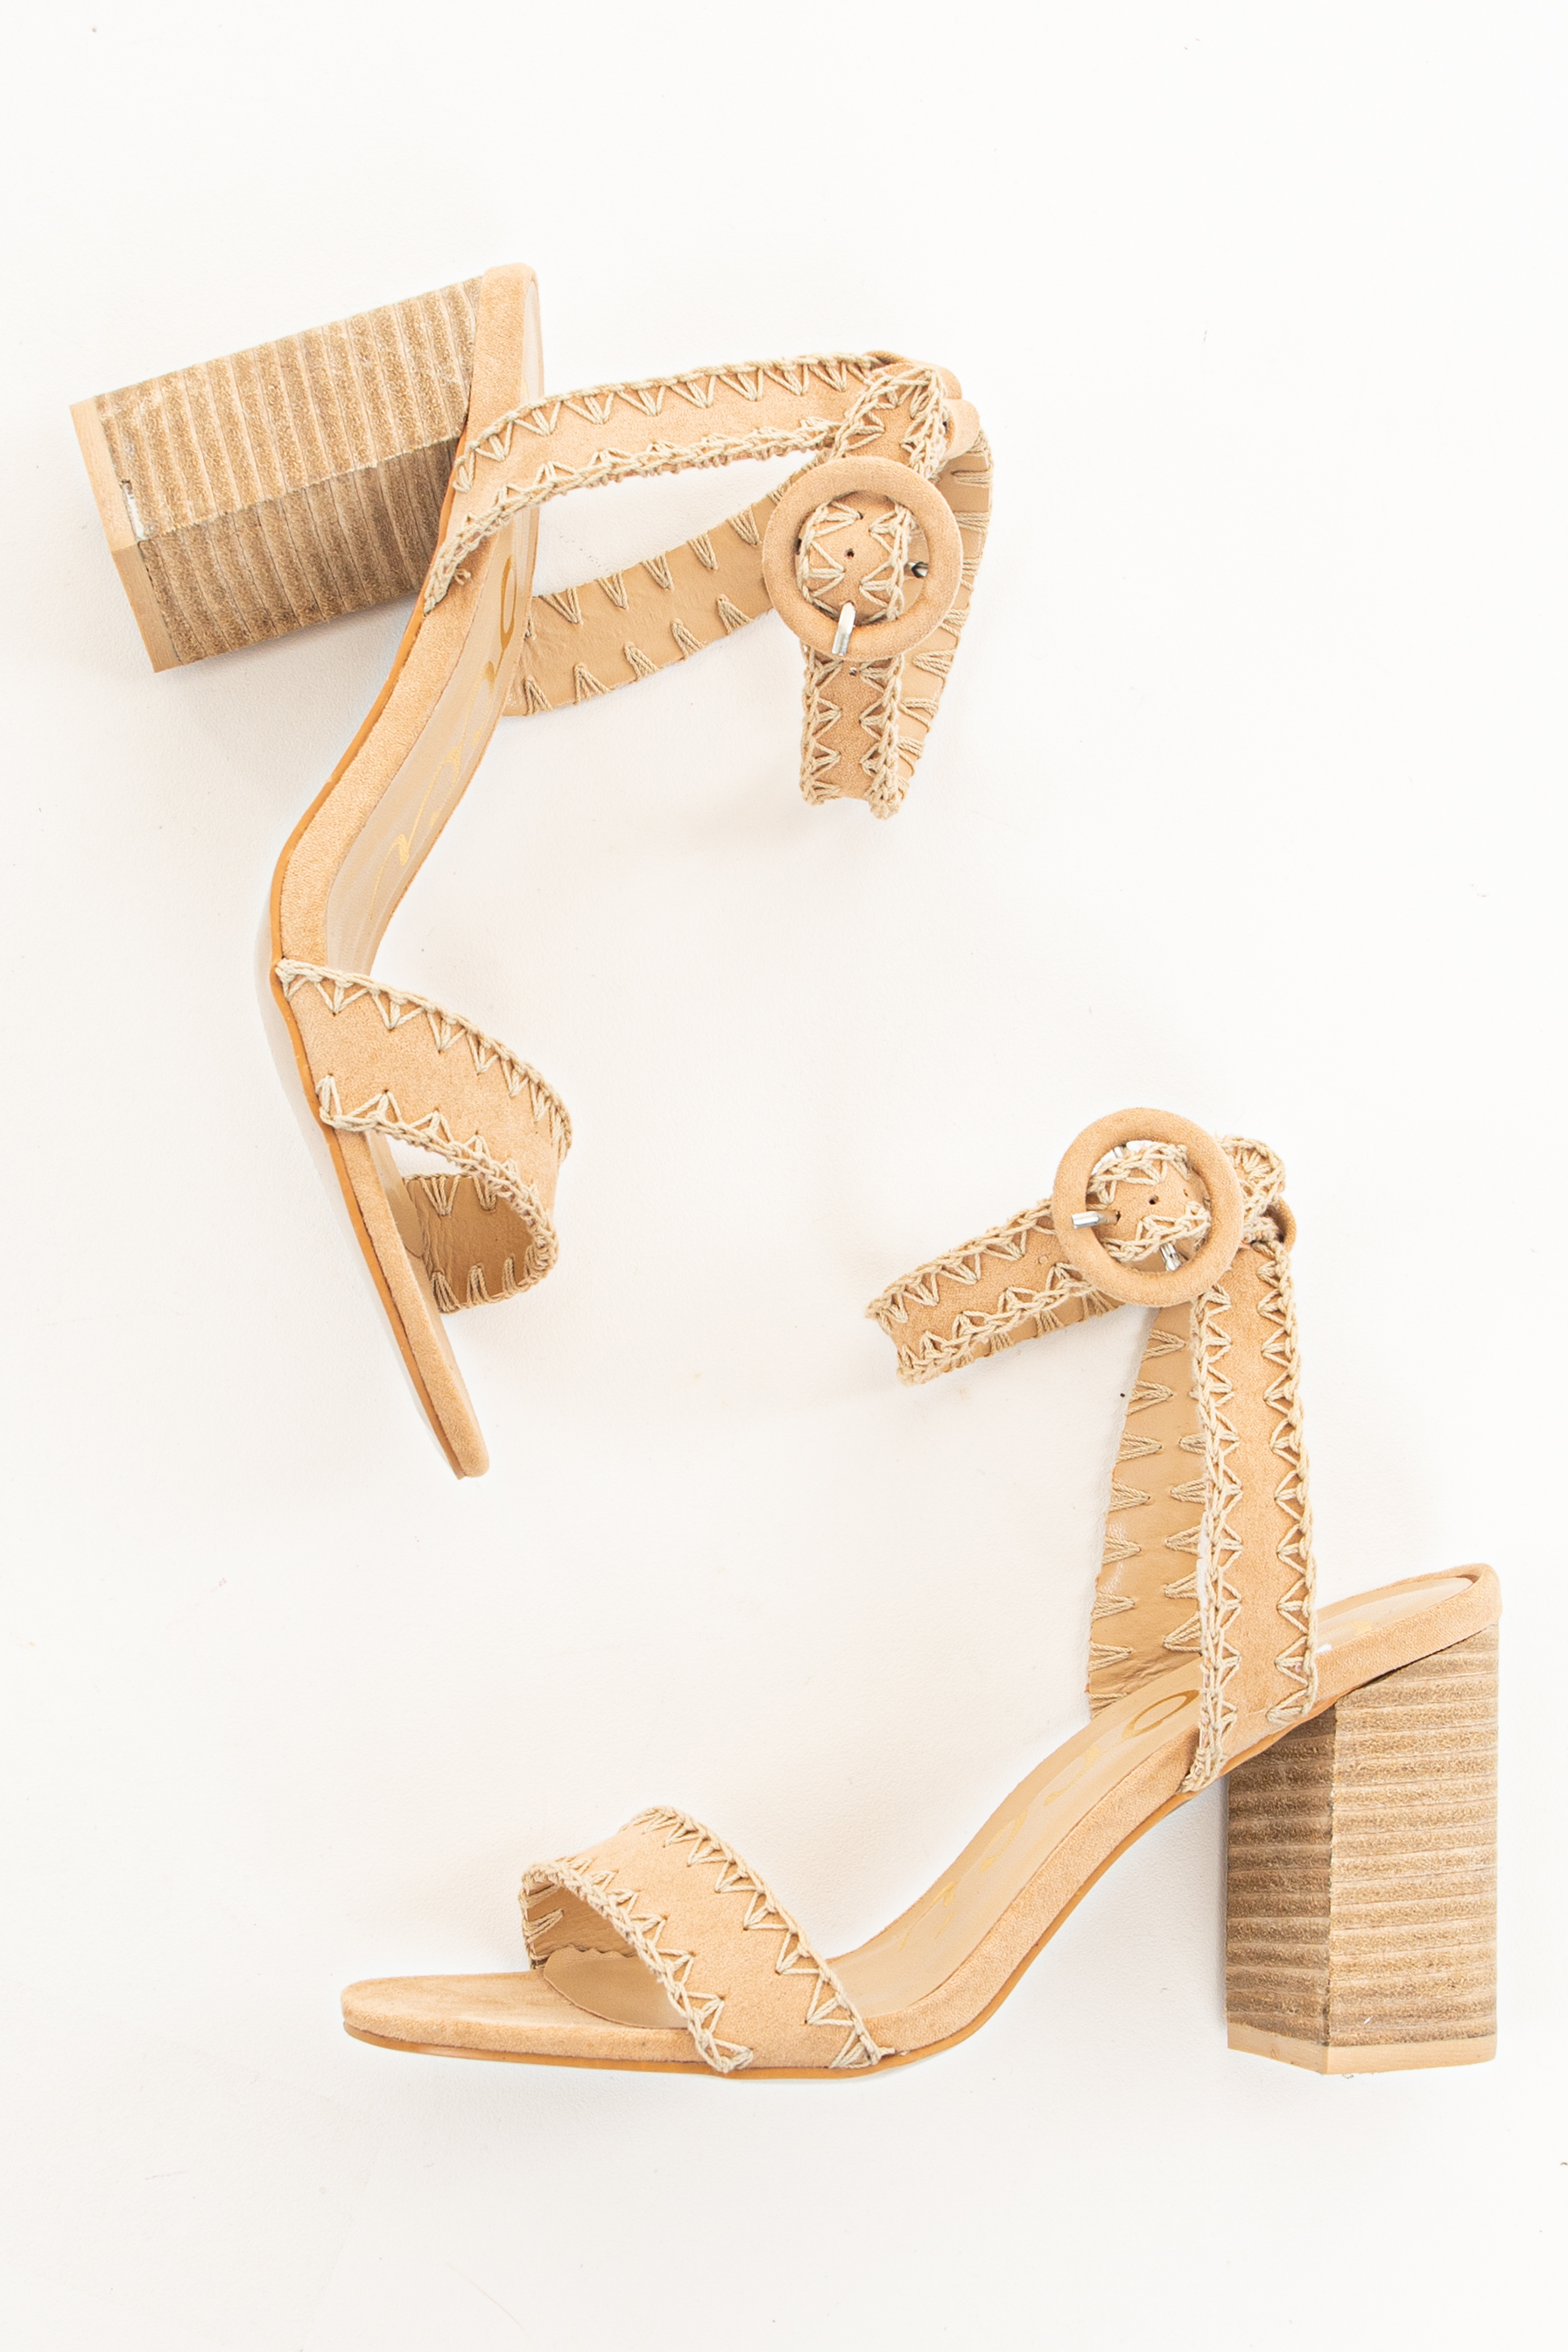 Beige Faux Suede High Heel Sandals with Exposed Stitching